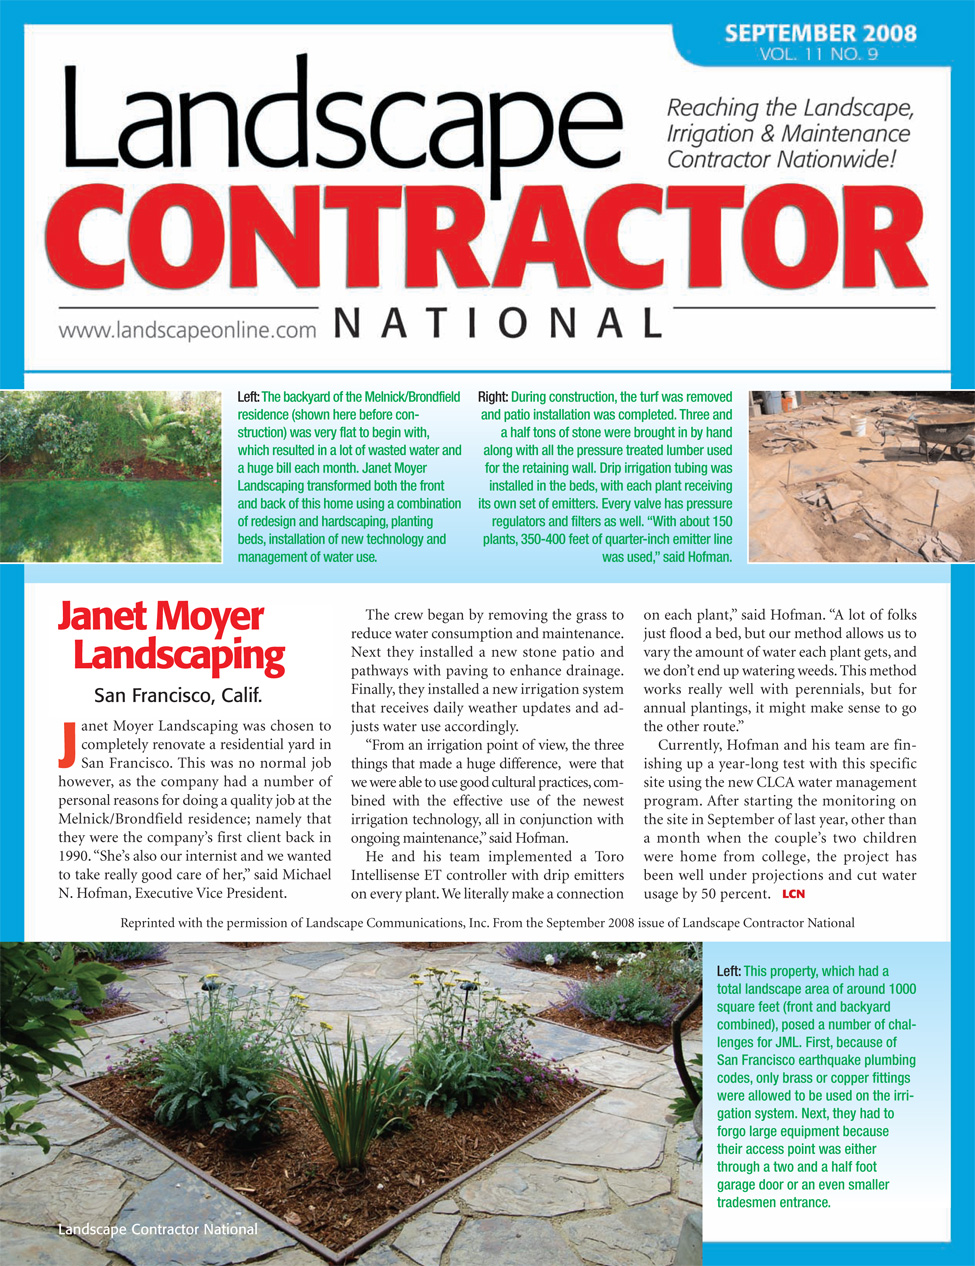 November 11, 2015 Landscape Contractor National - At The Forefront: Four California Smart Irrigation Projects — Janet